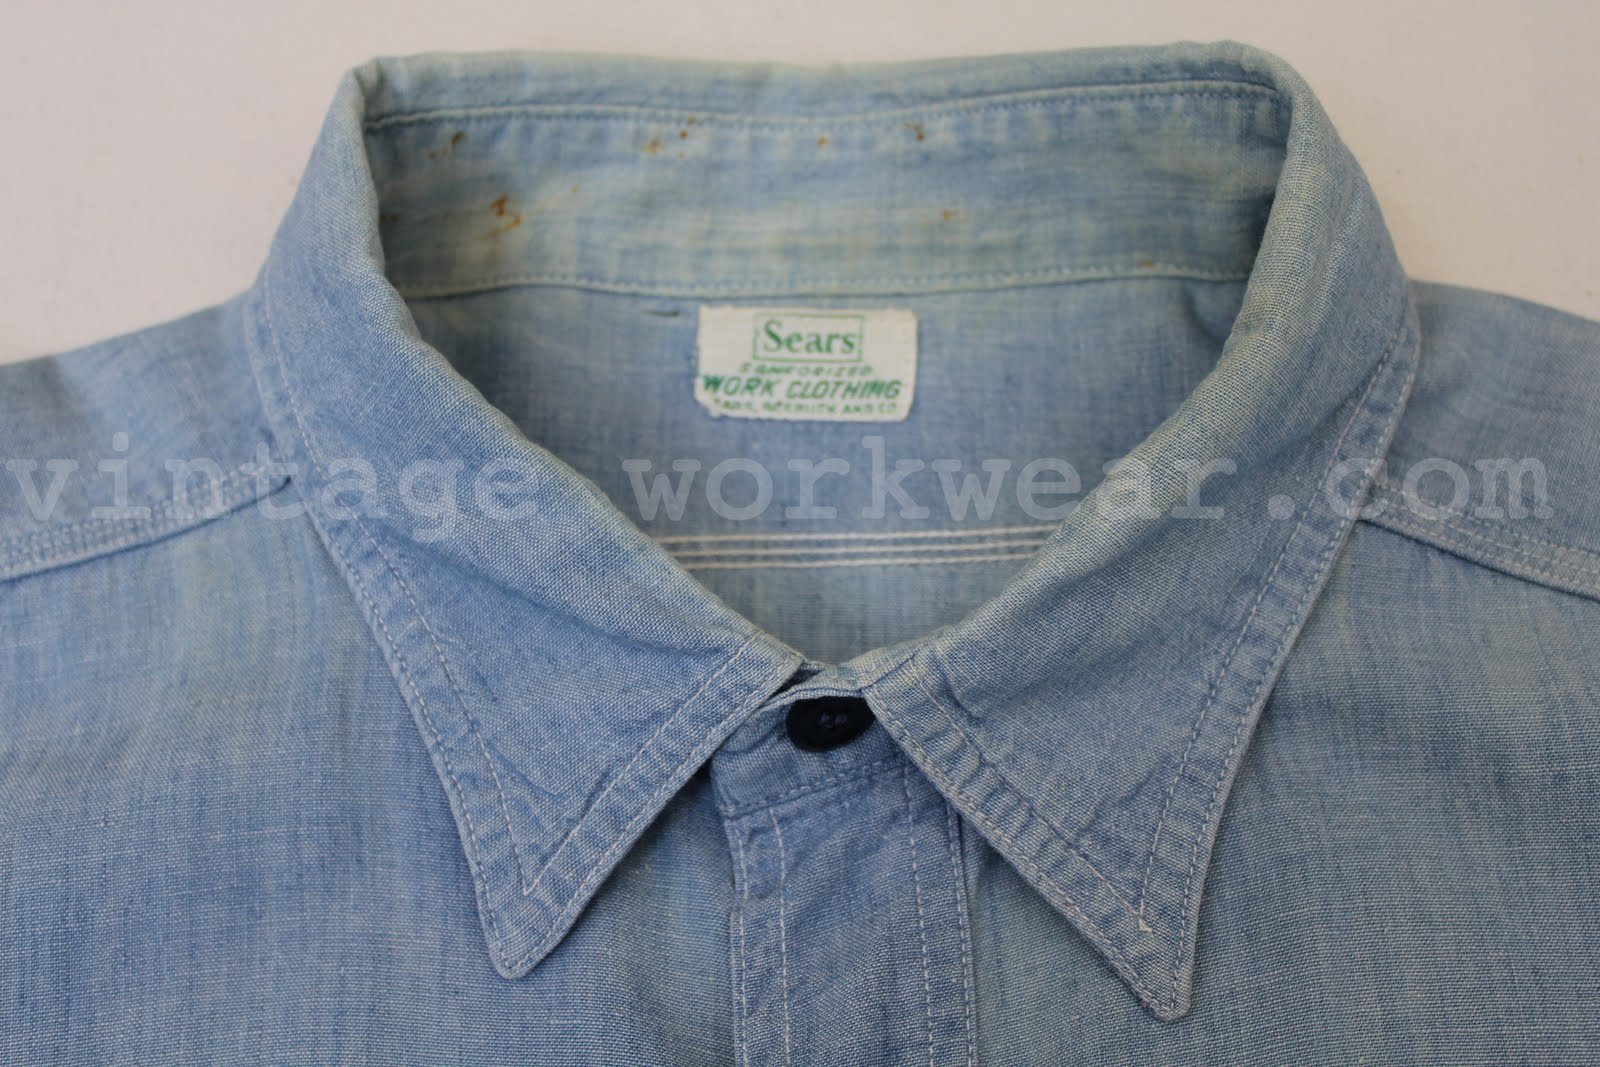 a87b8fa0348 1950 s era Sears WORK CLOTHING Hercules style sanforized s s chambray work  shirt